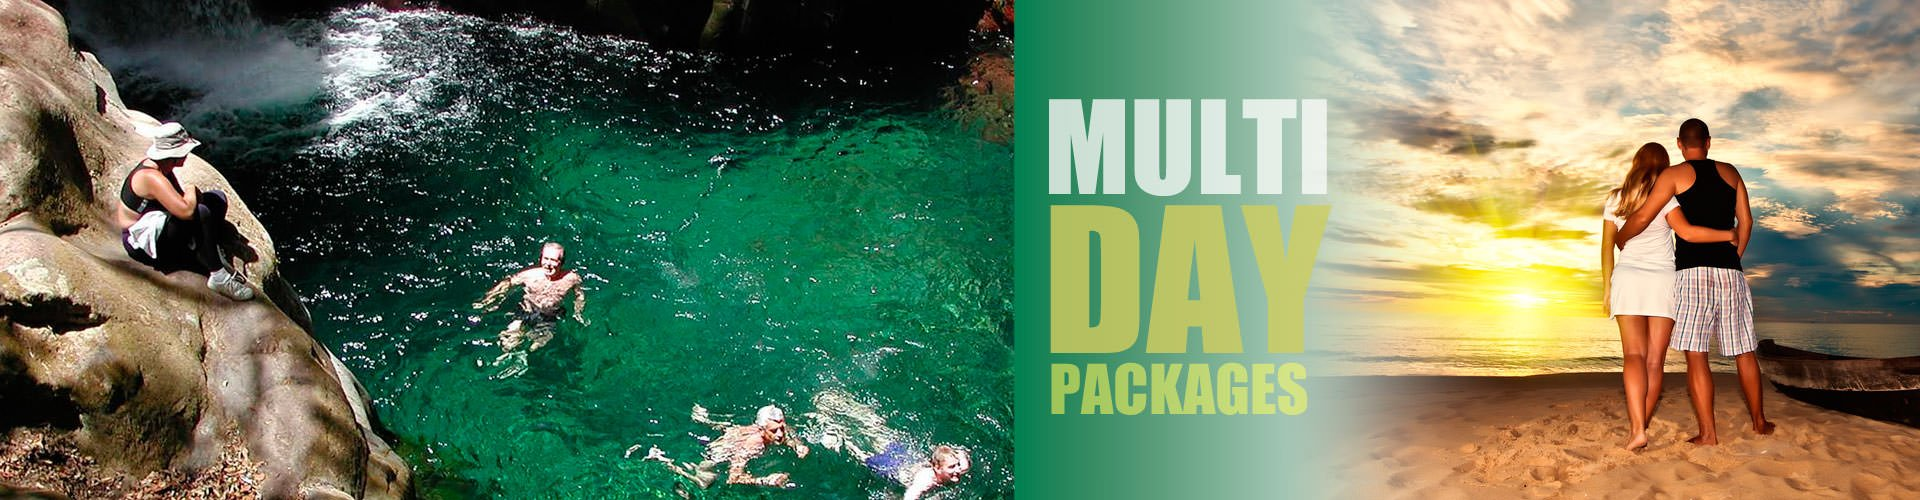 Multi Day Packages